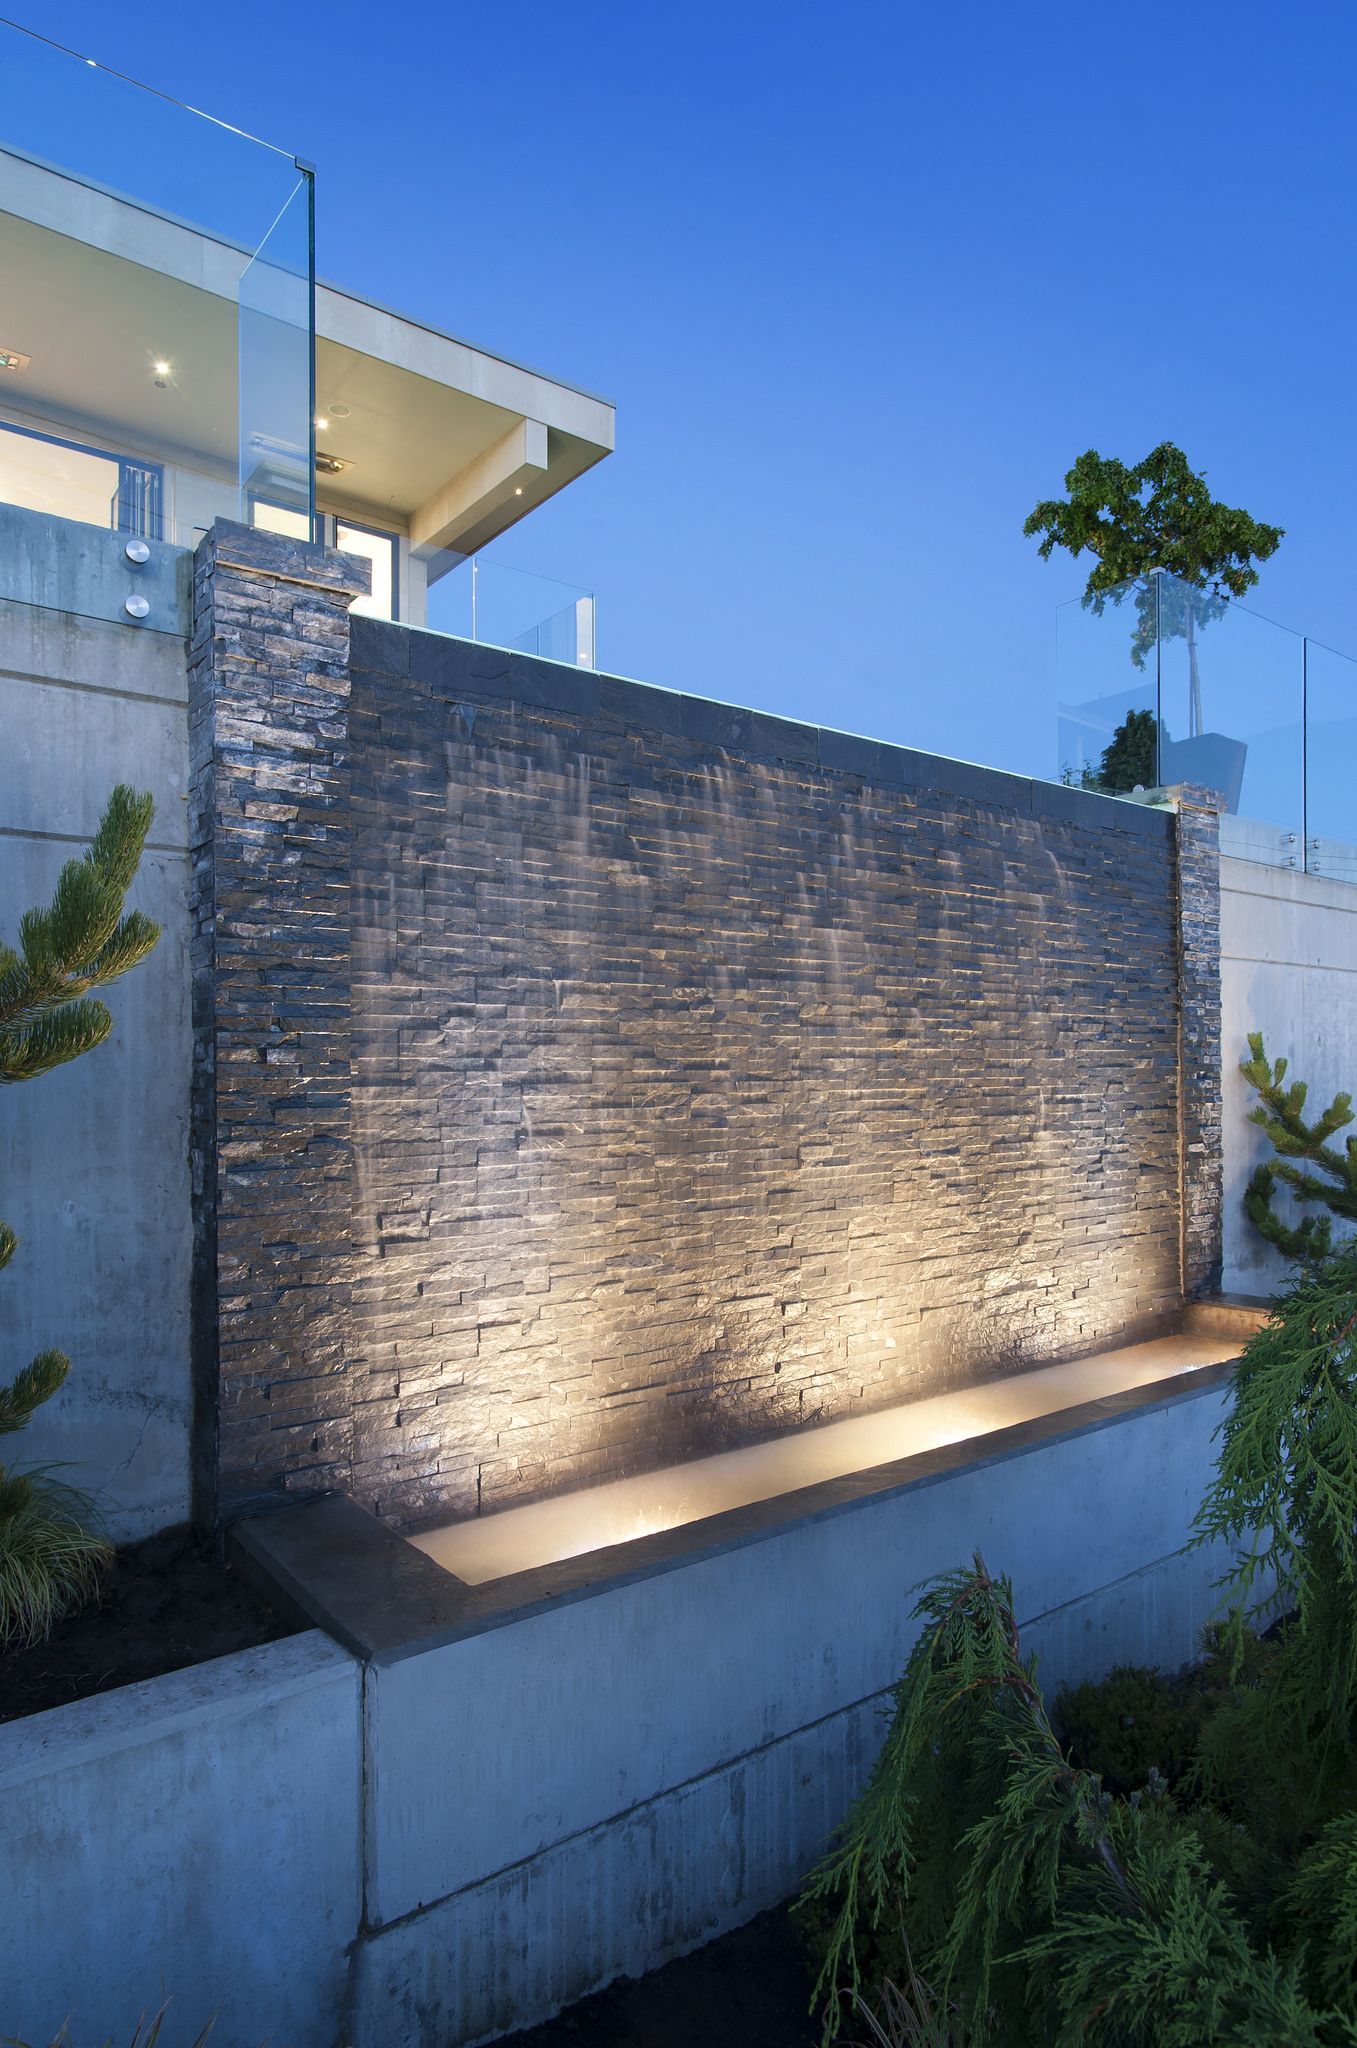 Alka Pool This Impressive Water Wall Acts As A Water Feature